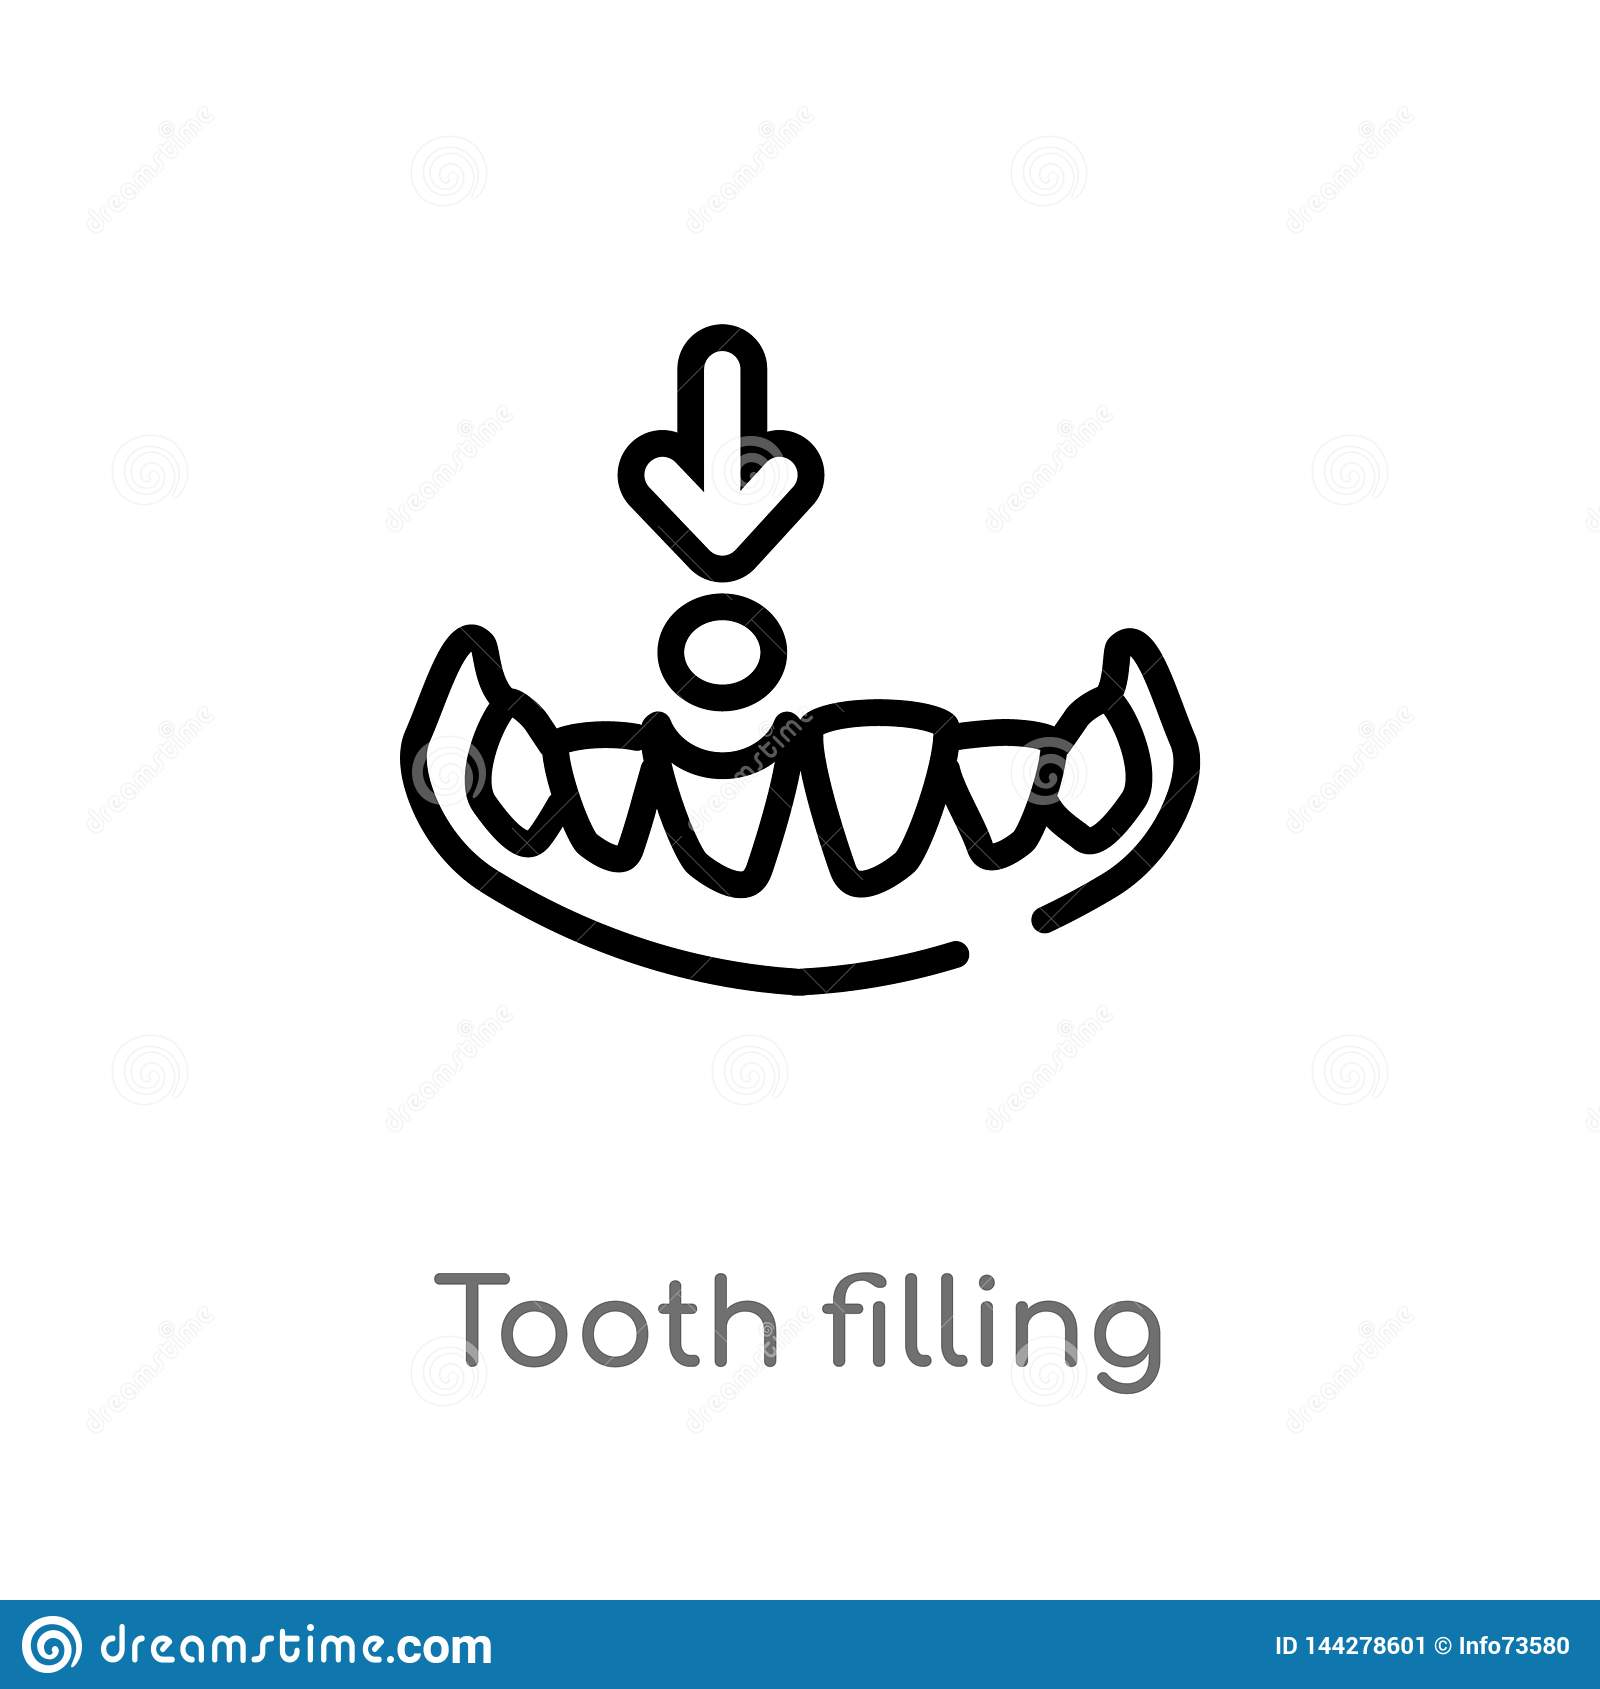 Outline Tooth Filling Vector Icon. Isolated Black Simple